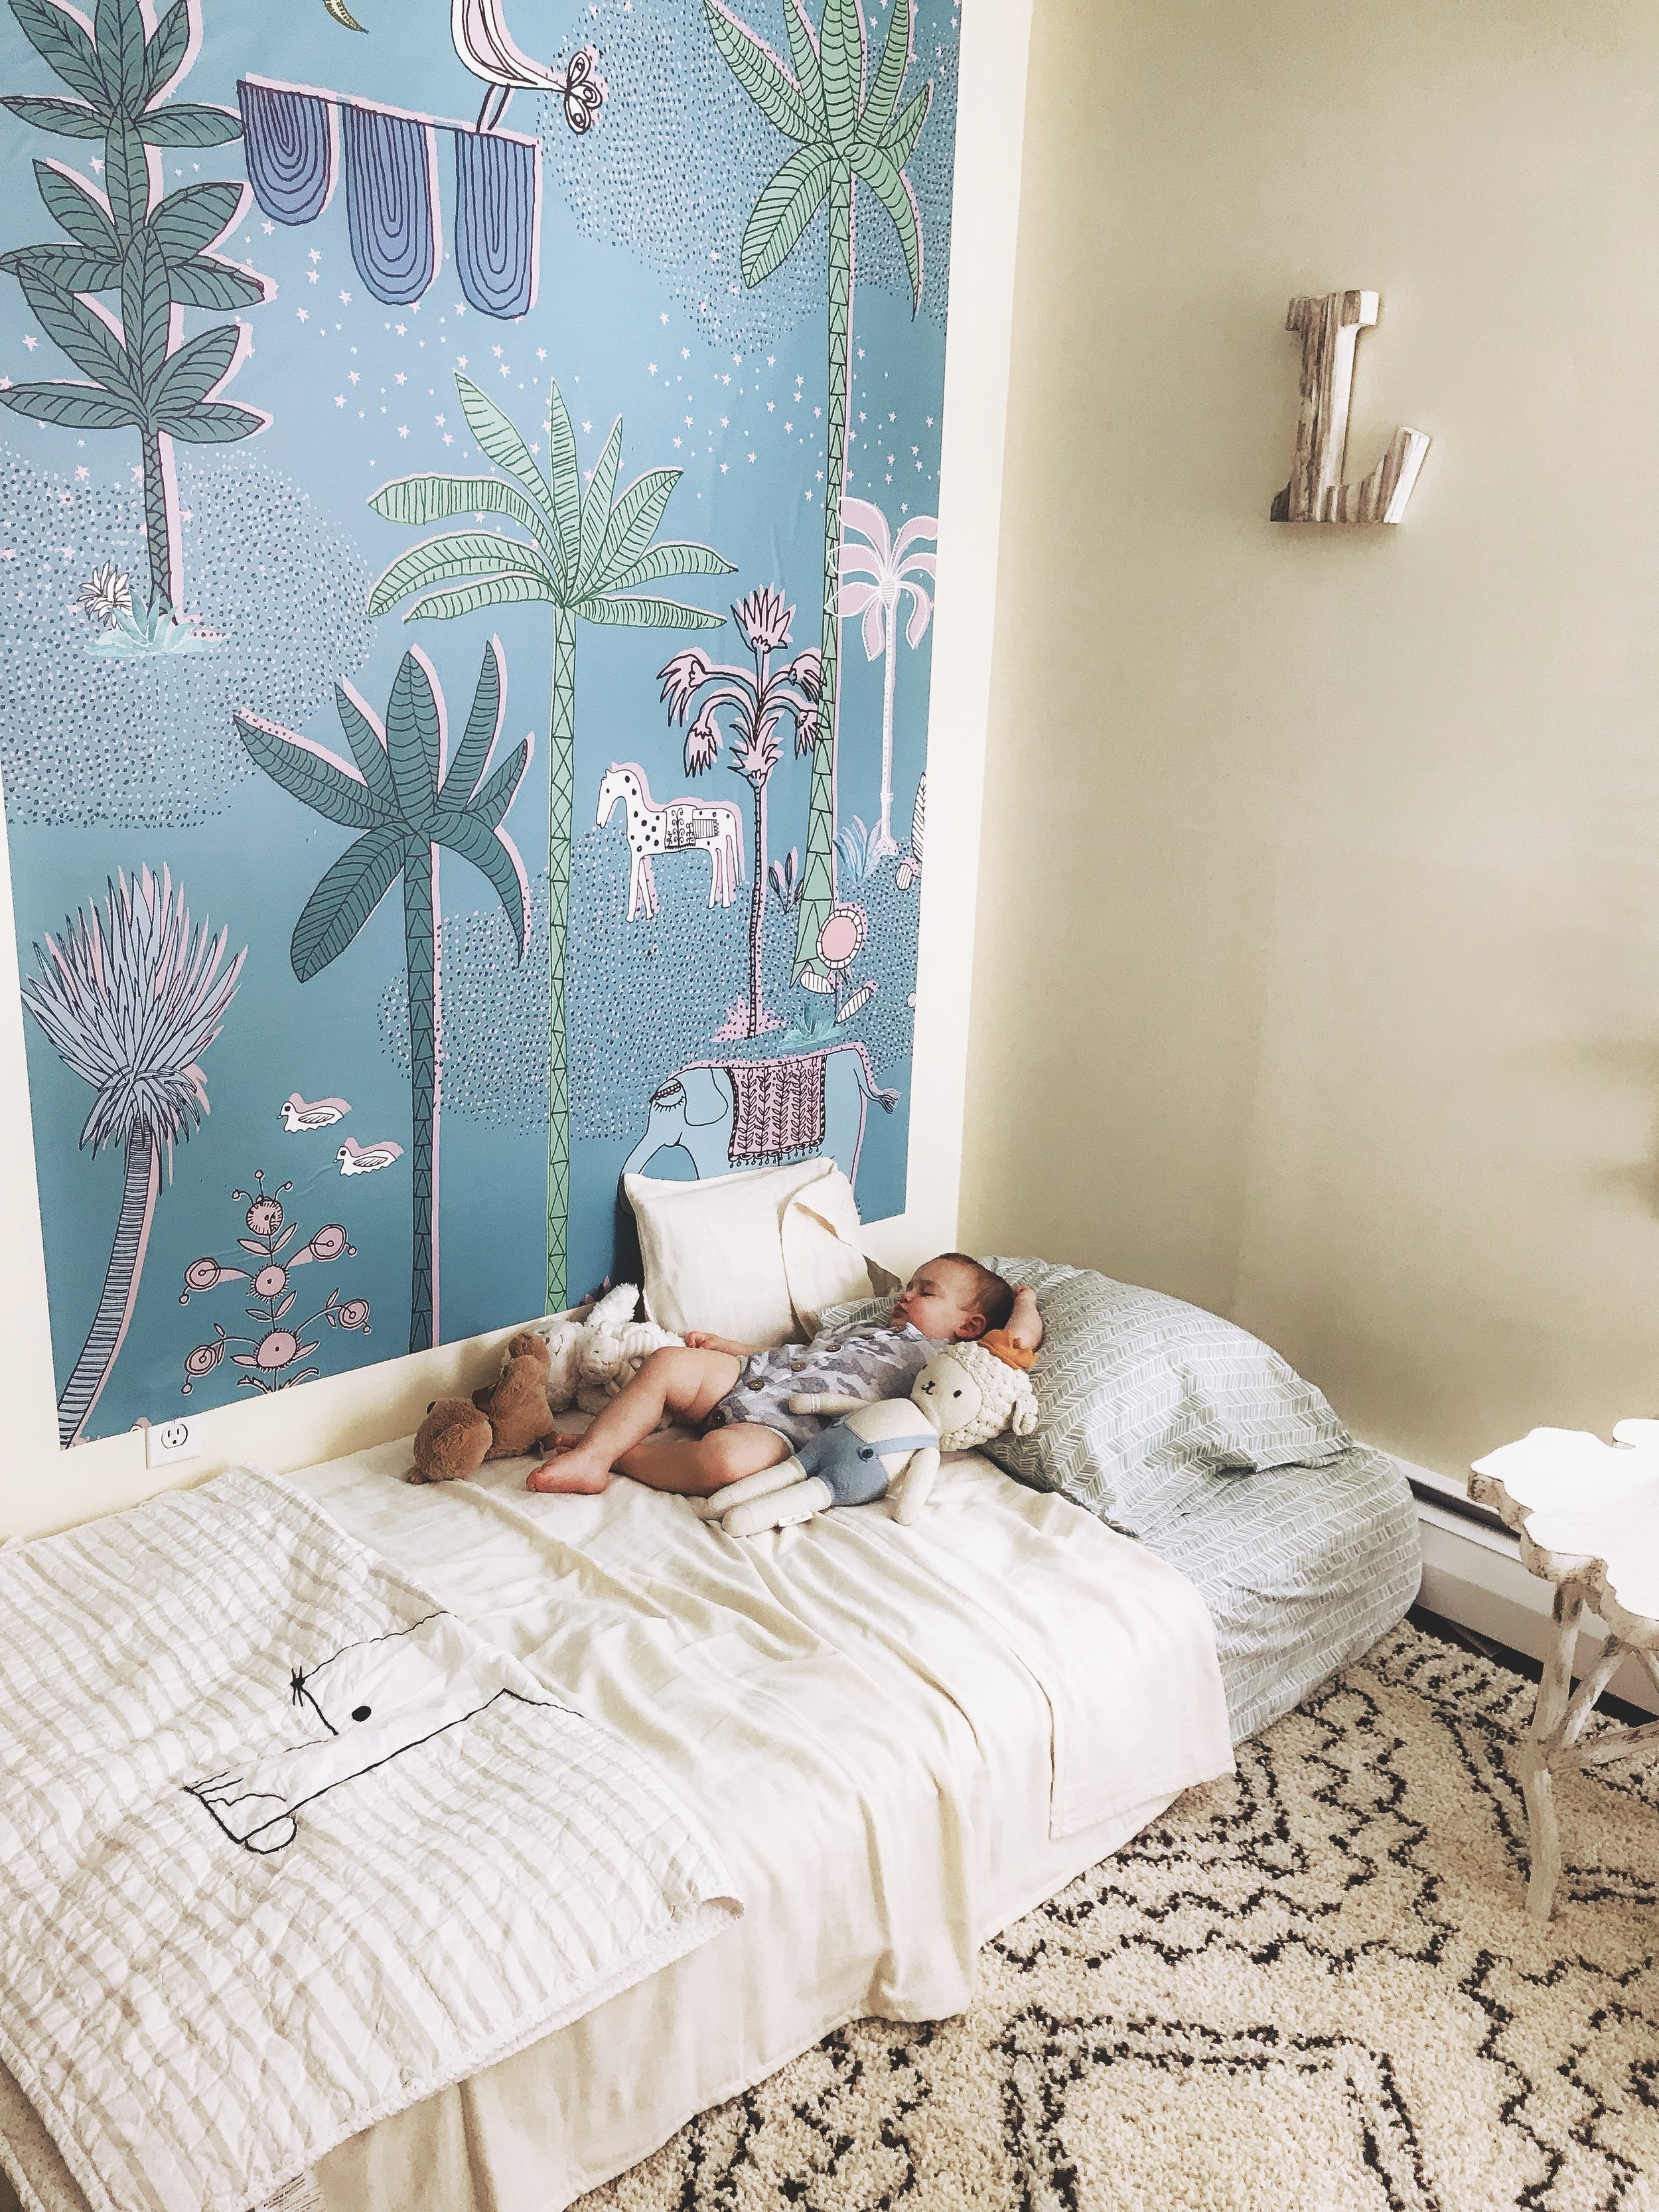 Wall decal is  Pottery Barn Kids , Gauze blanket is  Willaby , Sebastian the Lamb is  Cuddle & Kind  and his romper is  Childhoodsclothing